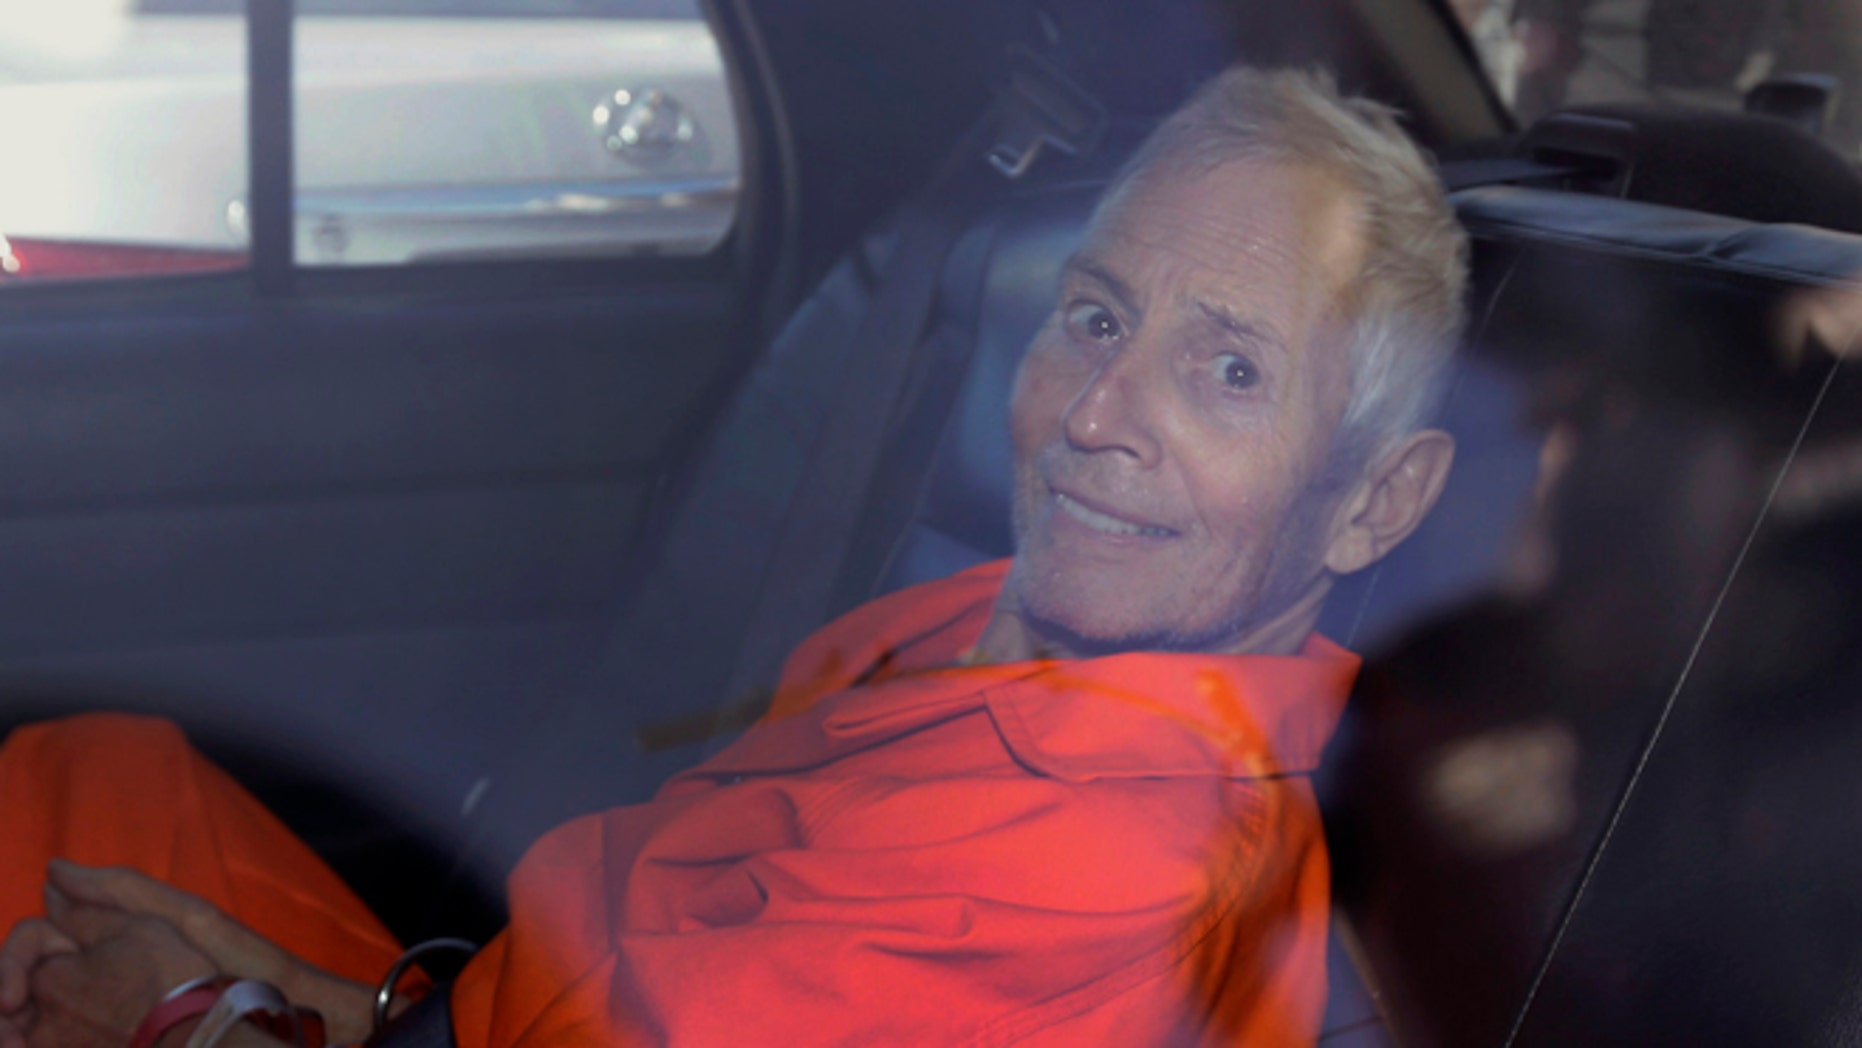 FILE - In this Tuesday, March 17, 2015, file photo, Robert Durst is transported from Orleans Parish Criminal District Court to the Orleans Parish Prison after his arraignment in New Orleans. The whispered words of Durst recorded in an unguarded moment in a bathroom could come back to haunt him - or help him - as he faces a murder charge. A possible move by prosecutors to introduce the incriminating material from a six-part documentary on his strange life and connection to three killings could back fire as interview footage did in the Michael Jackson molestation trial and the Robert Blake murder case.  (AP Photo/Gerald Herbert, File)